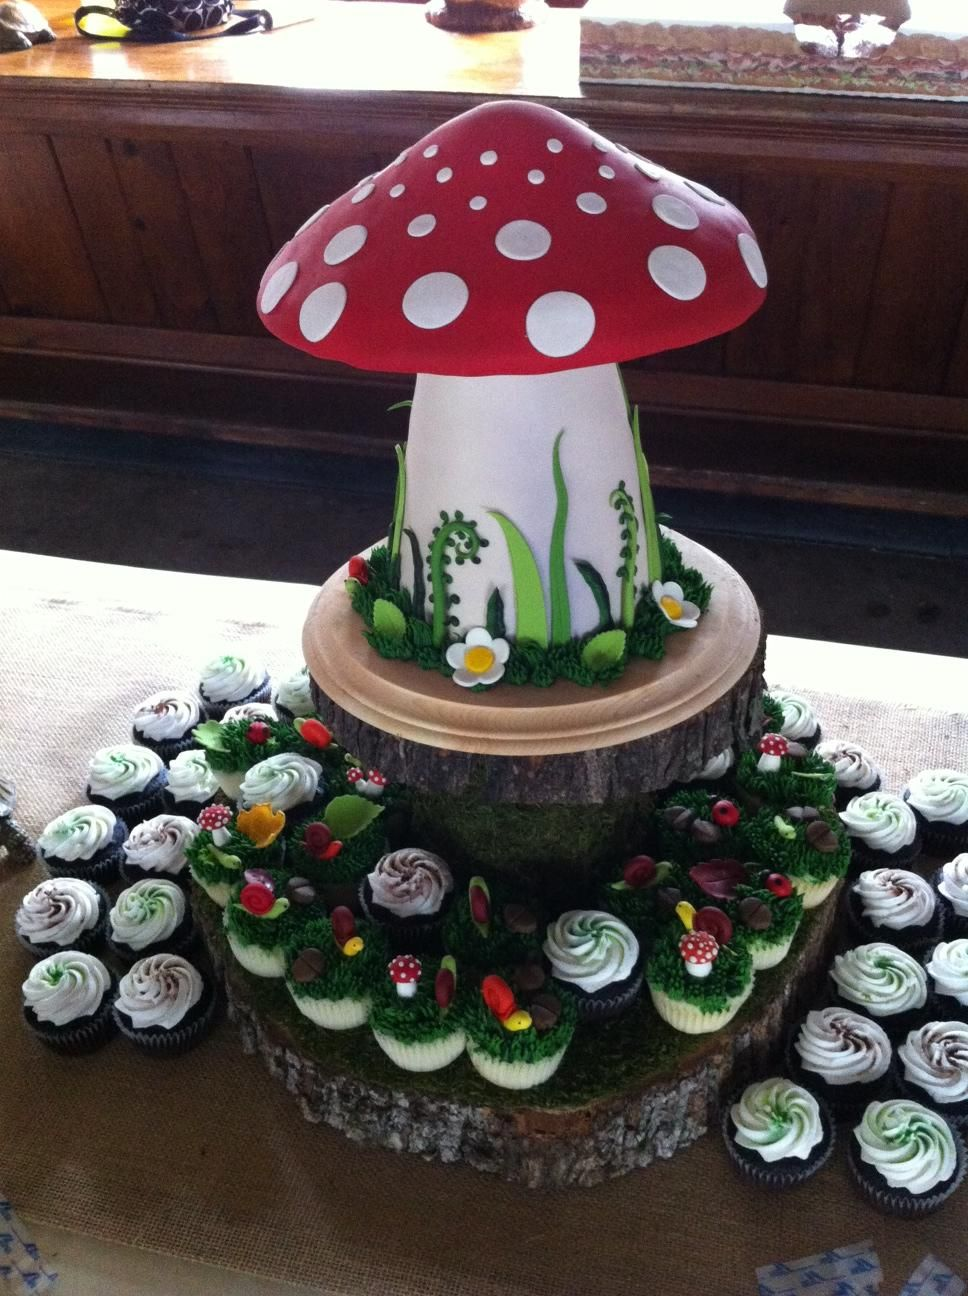 Astounding Imgur The Simple Image Sharer With Images Toadstool Cake Personalised Birthday Cards Beptaeletsinfo